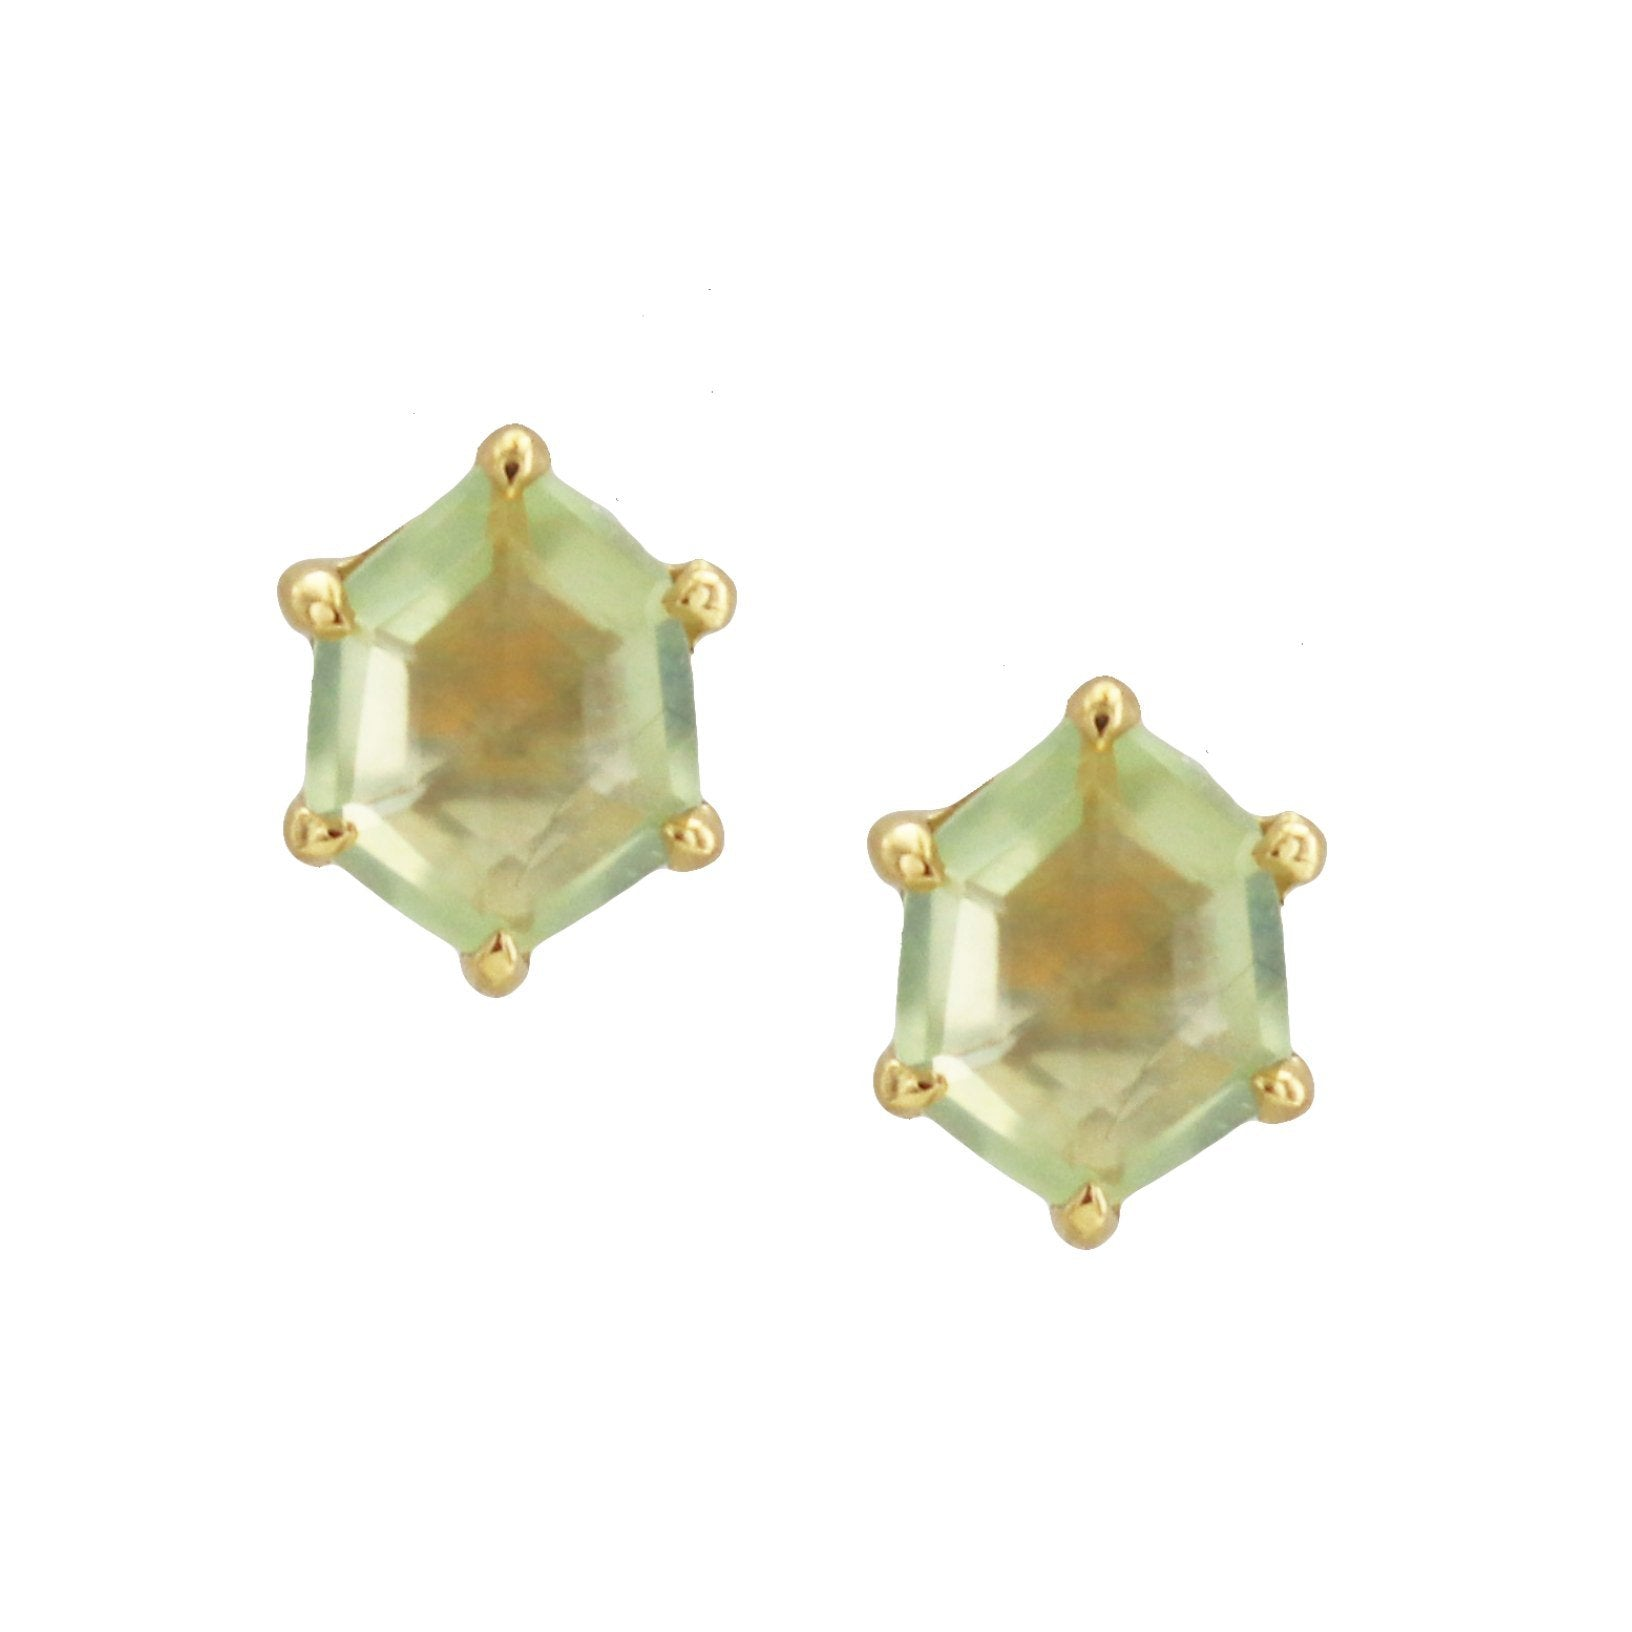 MINI HONOUR SHIELD STUD EARRINGS - MINT PREHNITE & GOLD